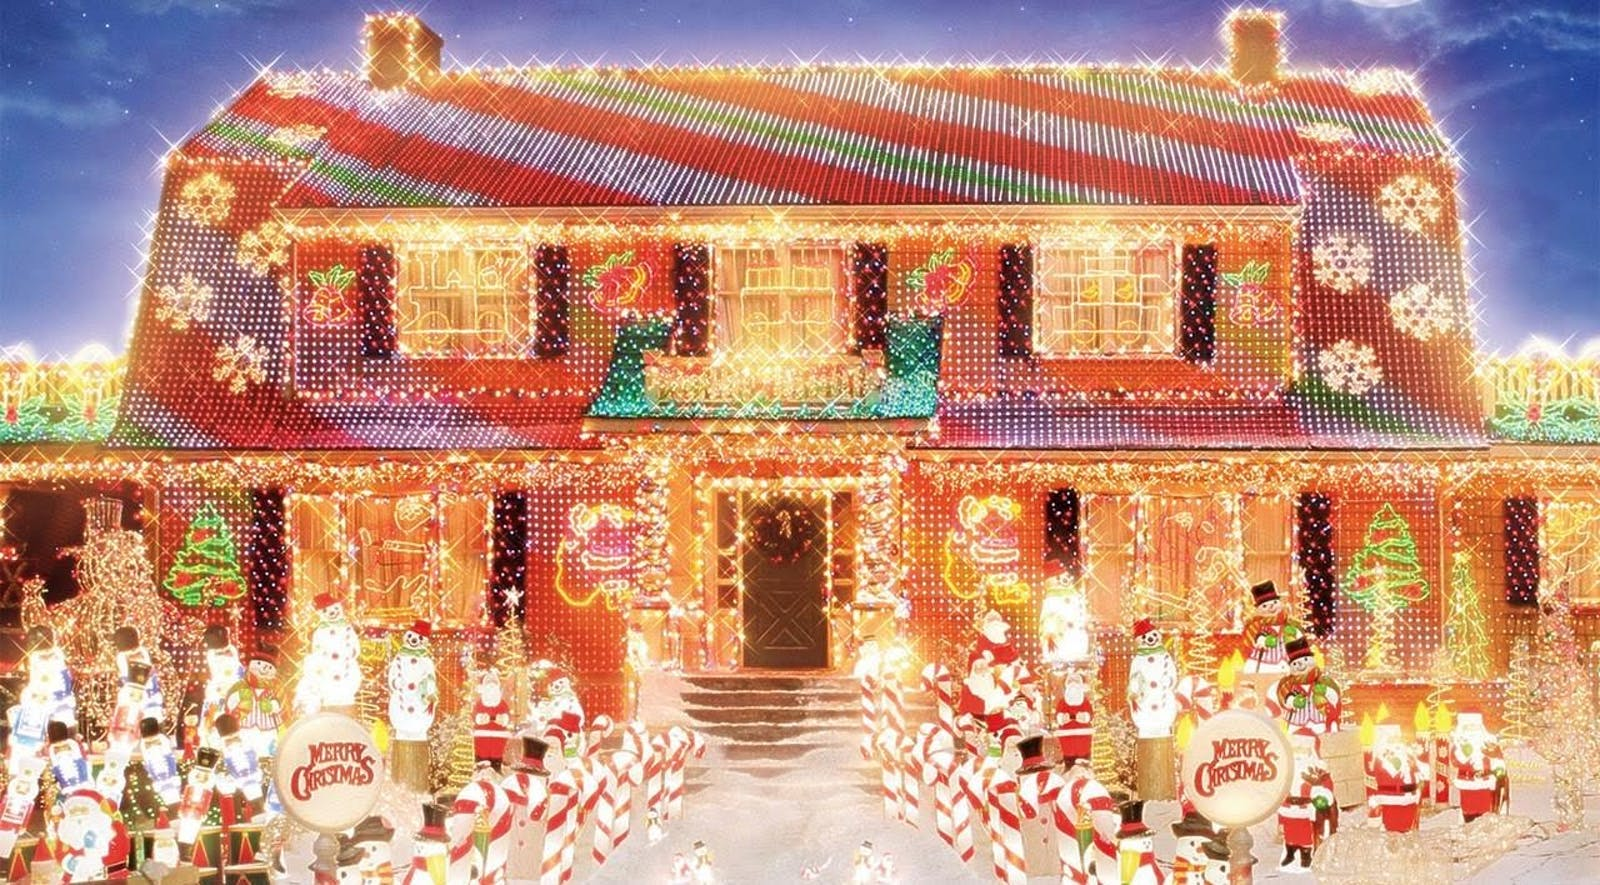 House from movie Deck The Halls